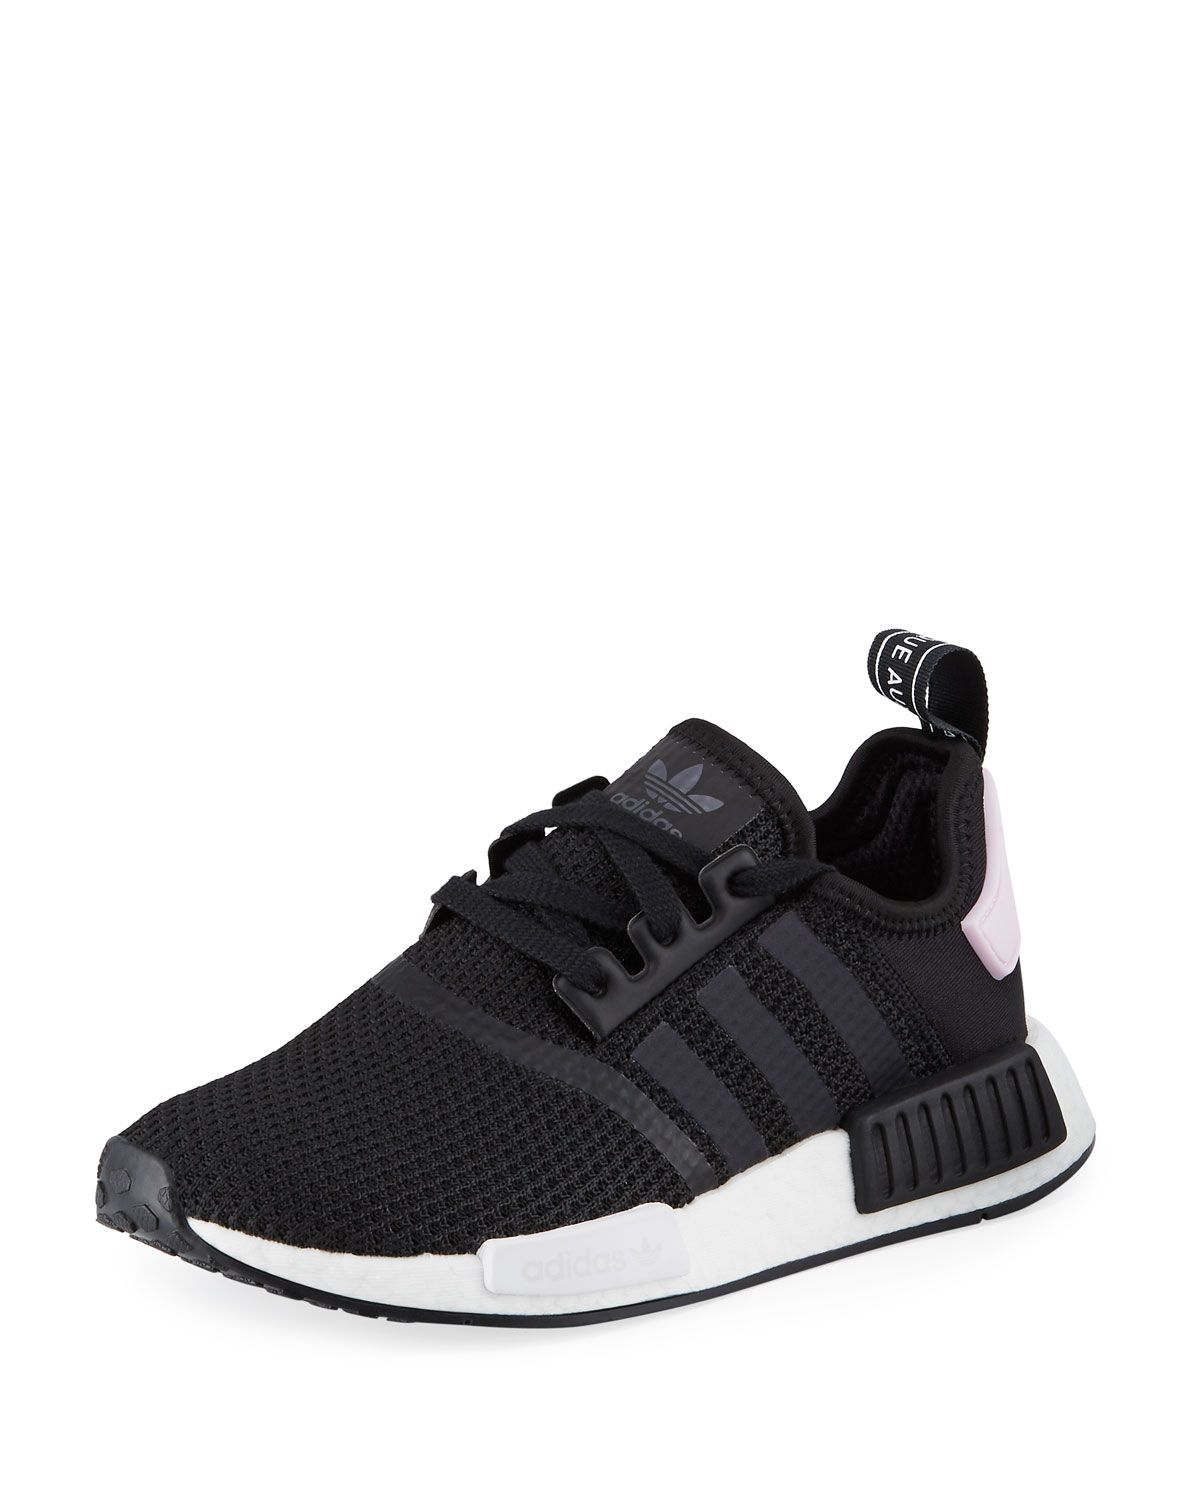 dcb0bd116 Adidas Women's NMD R1 Primeknit Sneakers | Products | Womens nmd ...